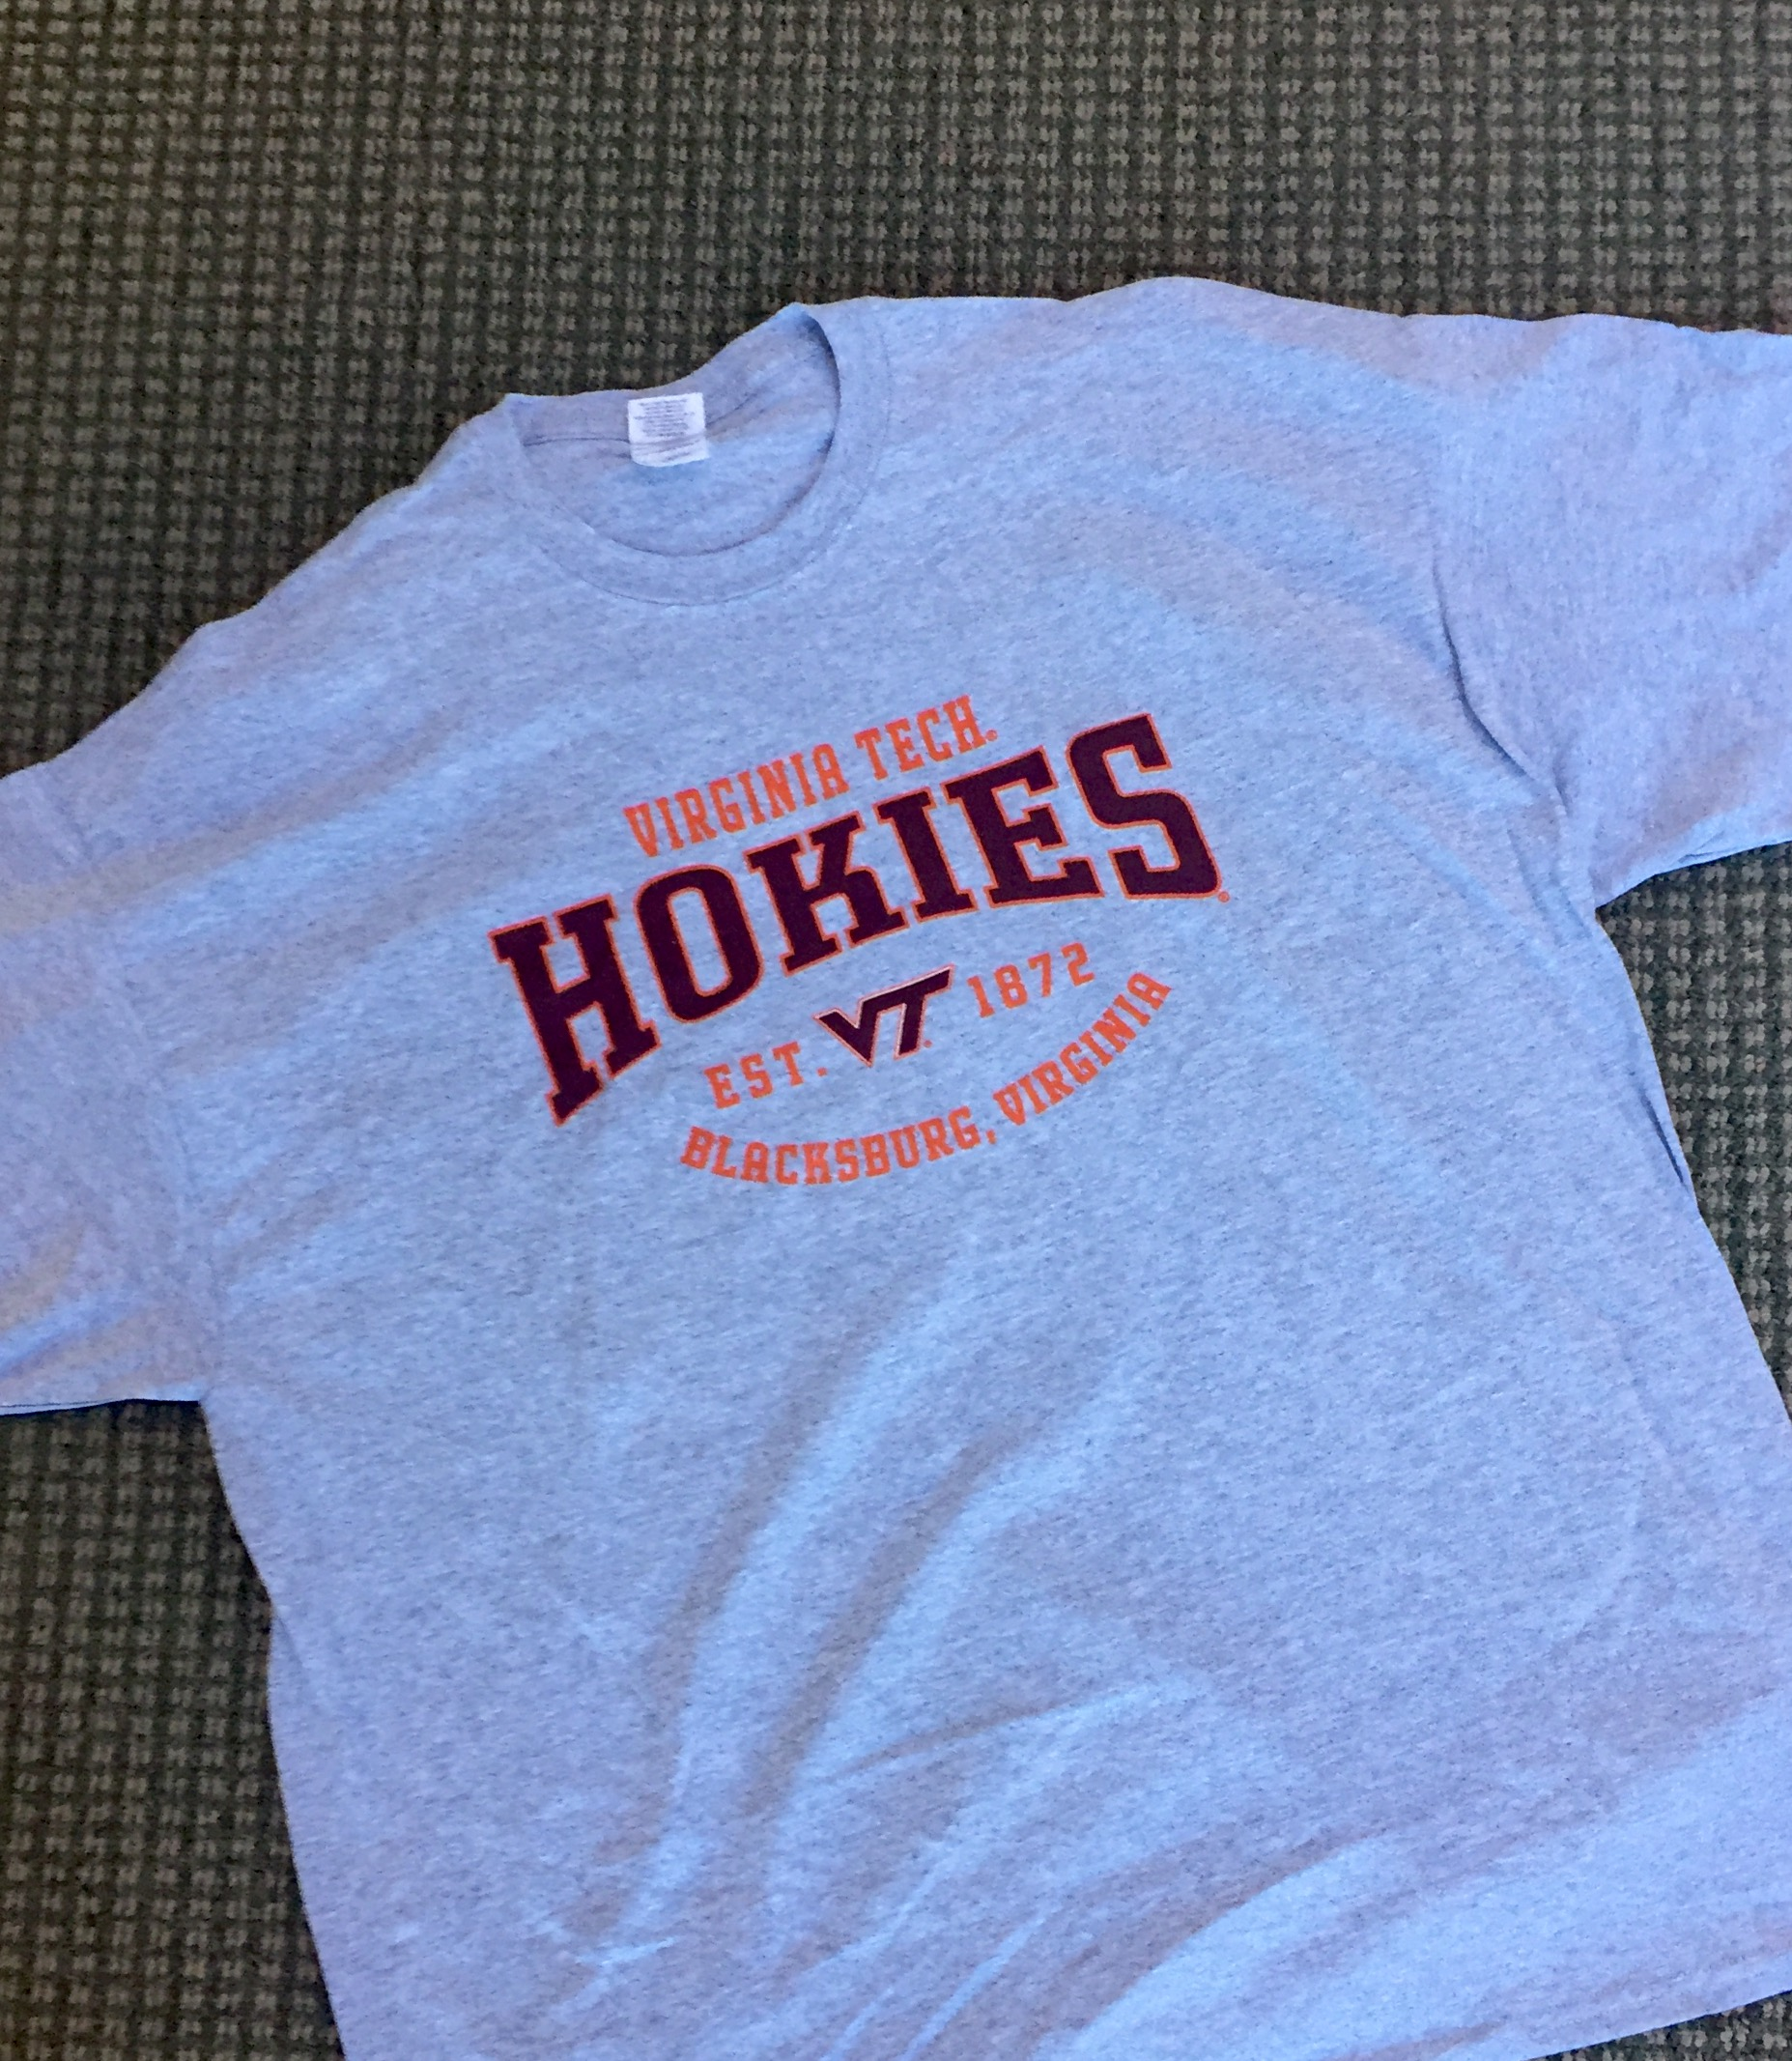 Virginia Tech Hokies NWT tee's Size Large